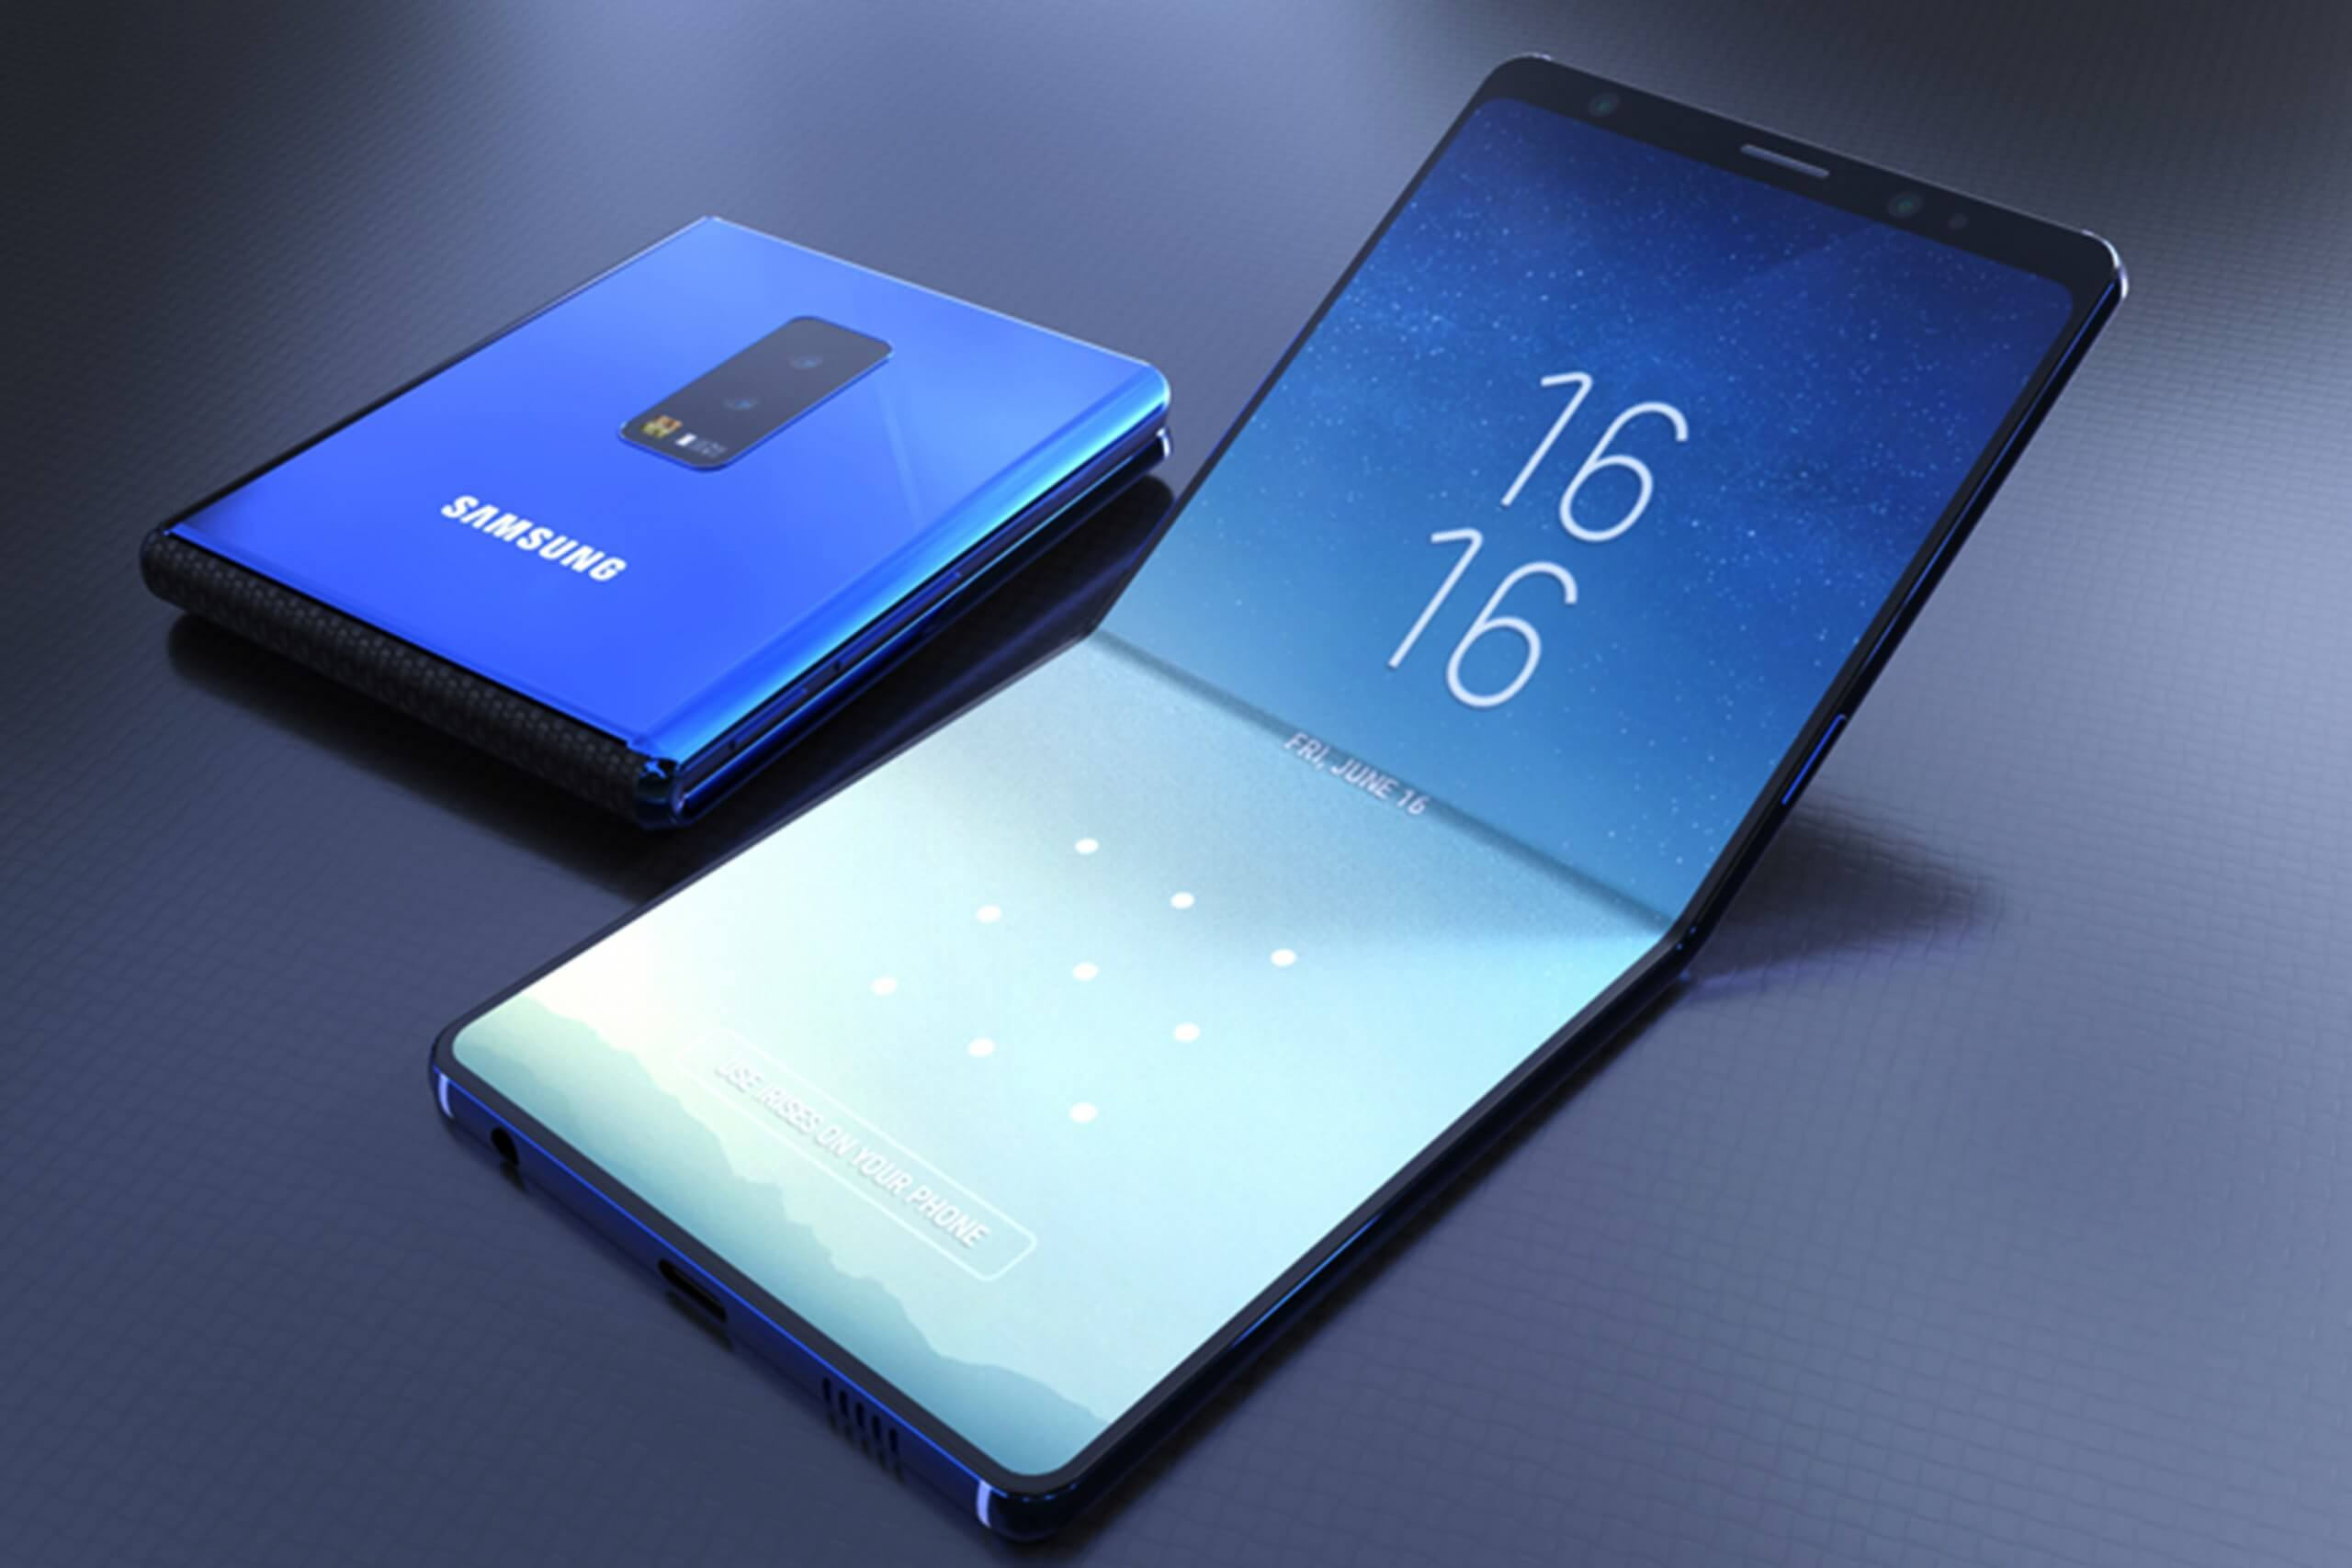 Samsung's much-hyped foldable smartphone delayed again